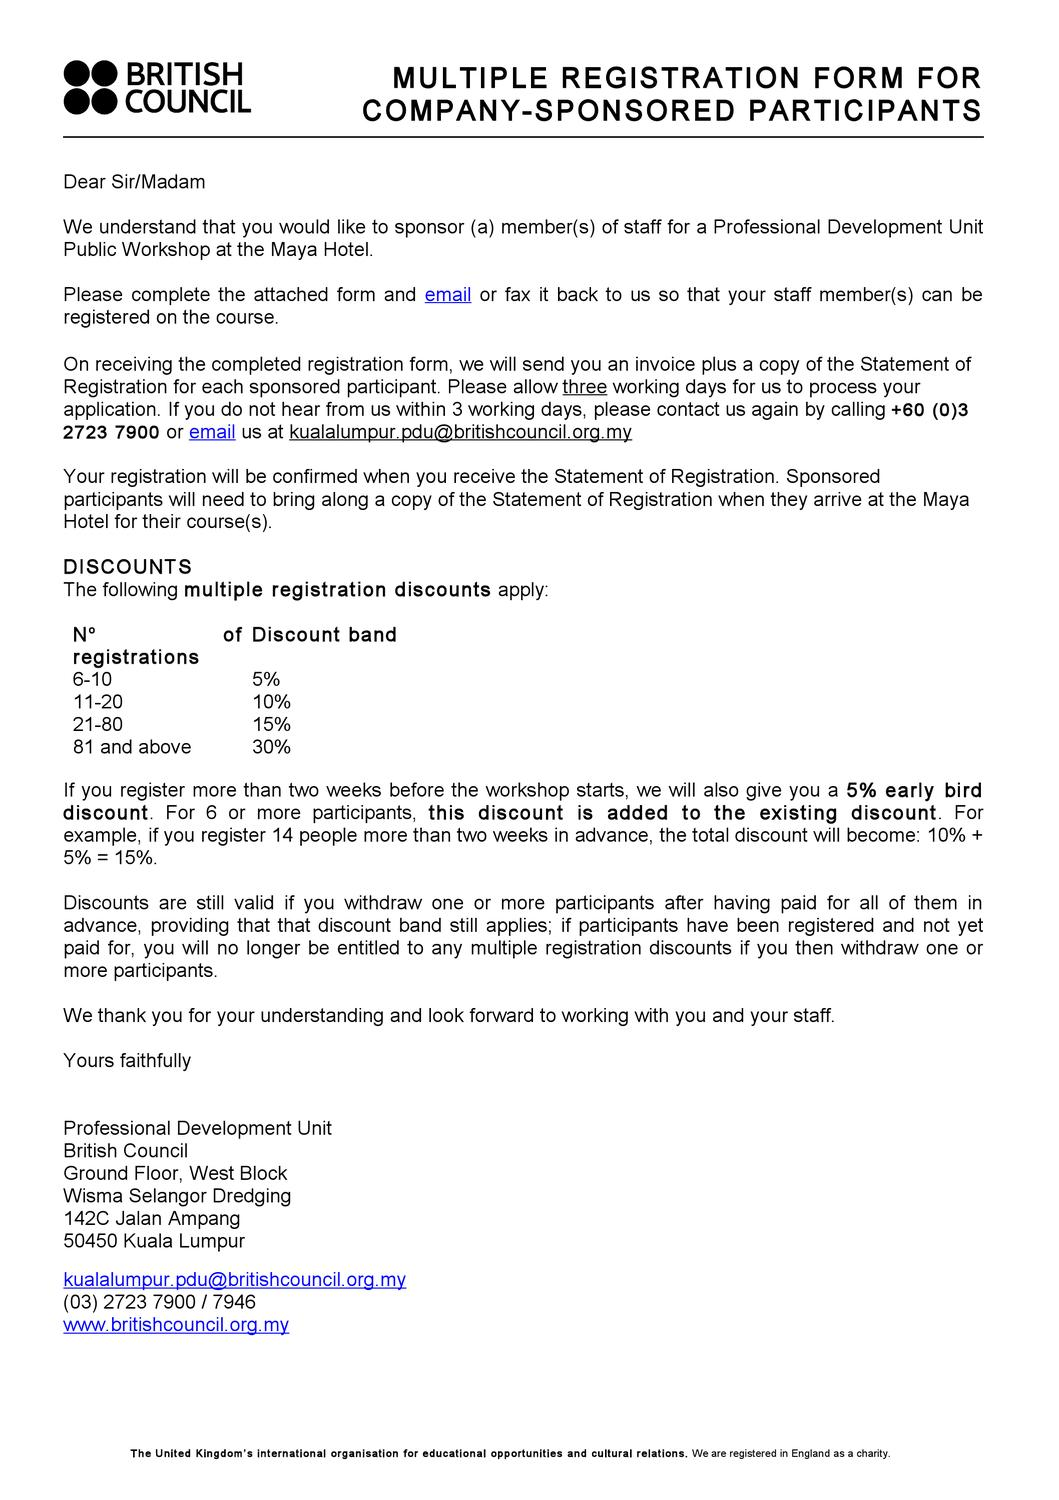 British Council Malaysia - Corporate Training - Registration Form ...